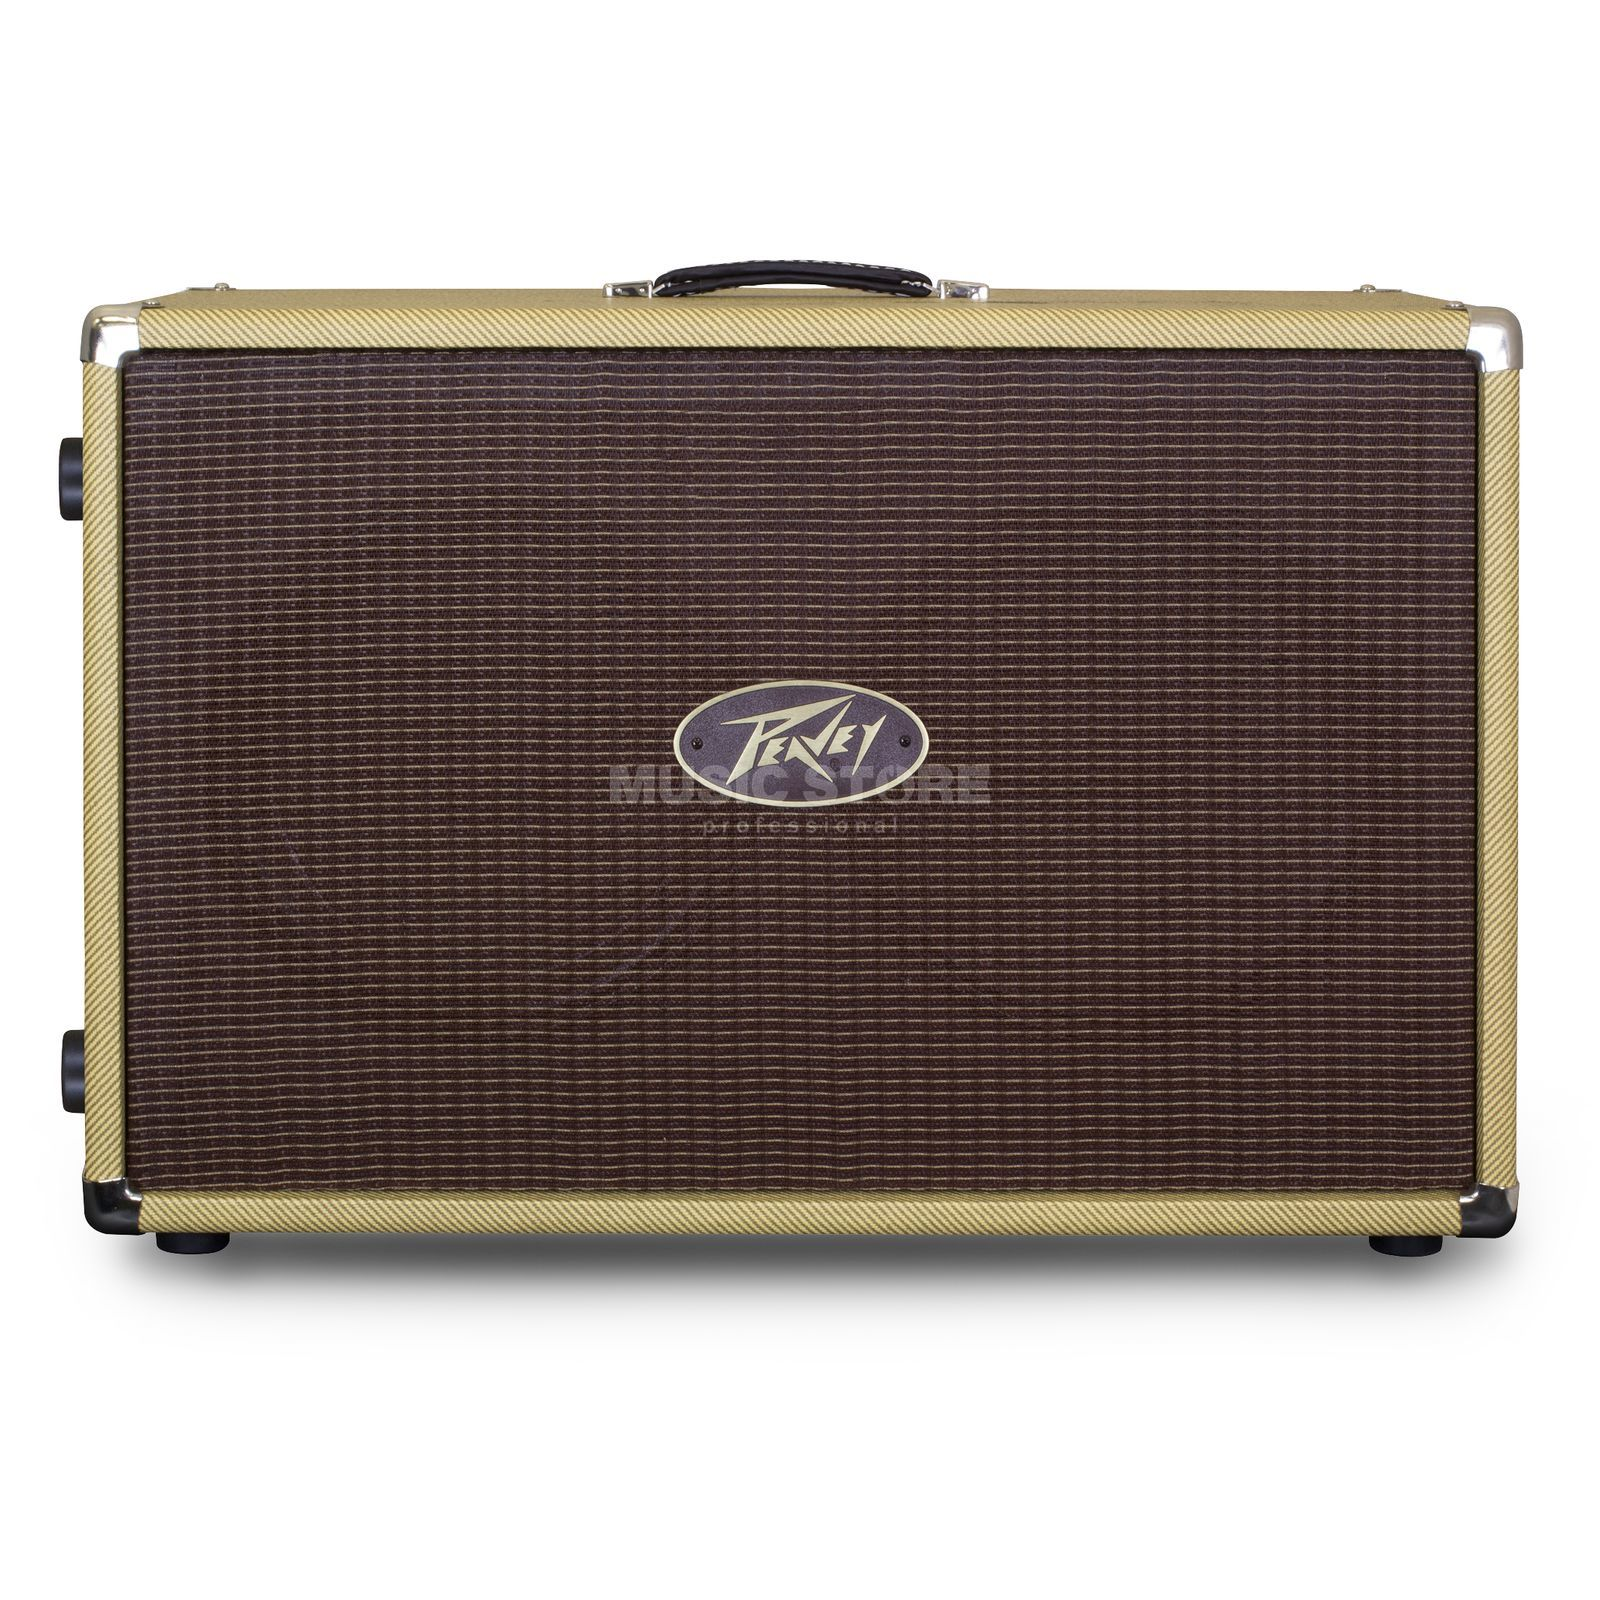 Peavey 212-C Classic Cabinet Tweed Celestion G12M/G12T-75 Product Image